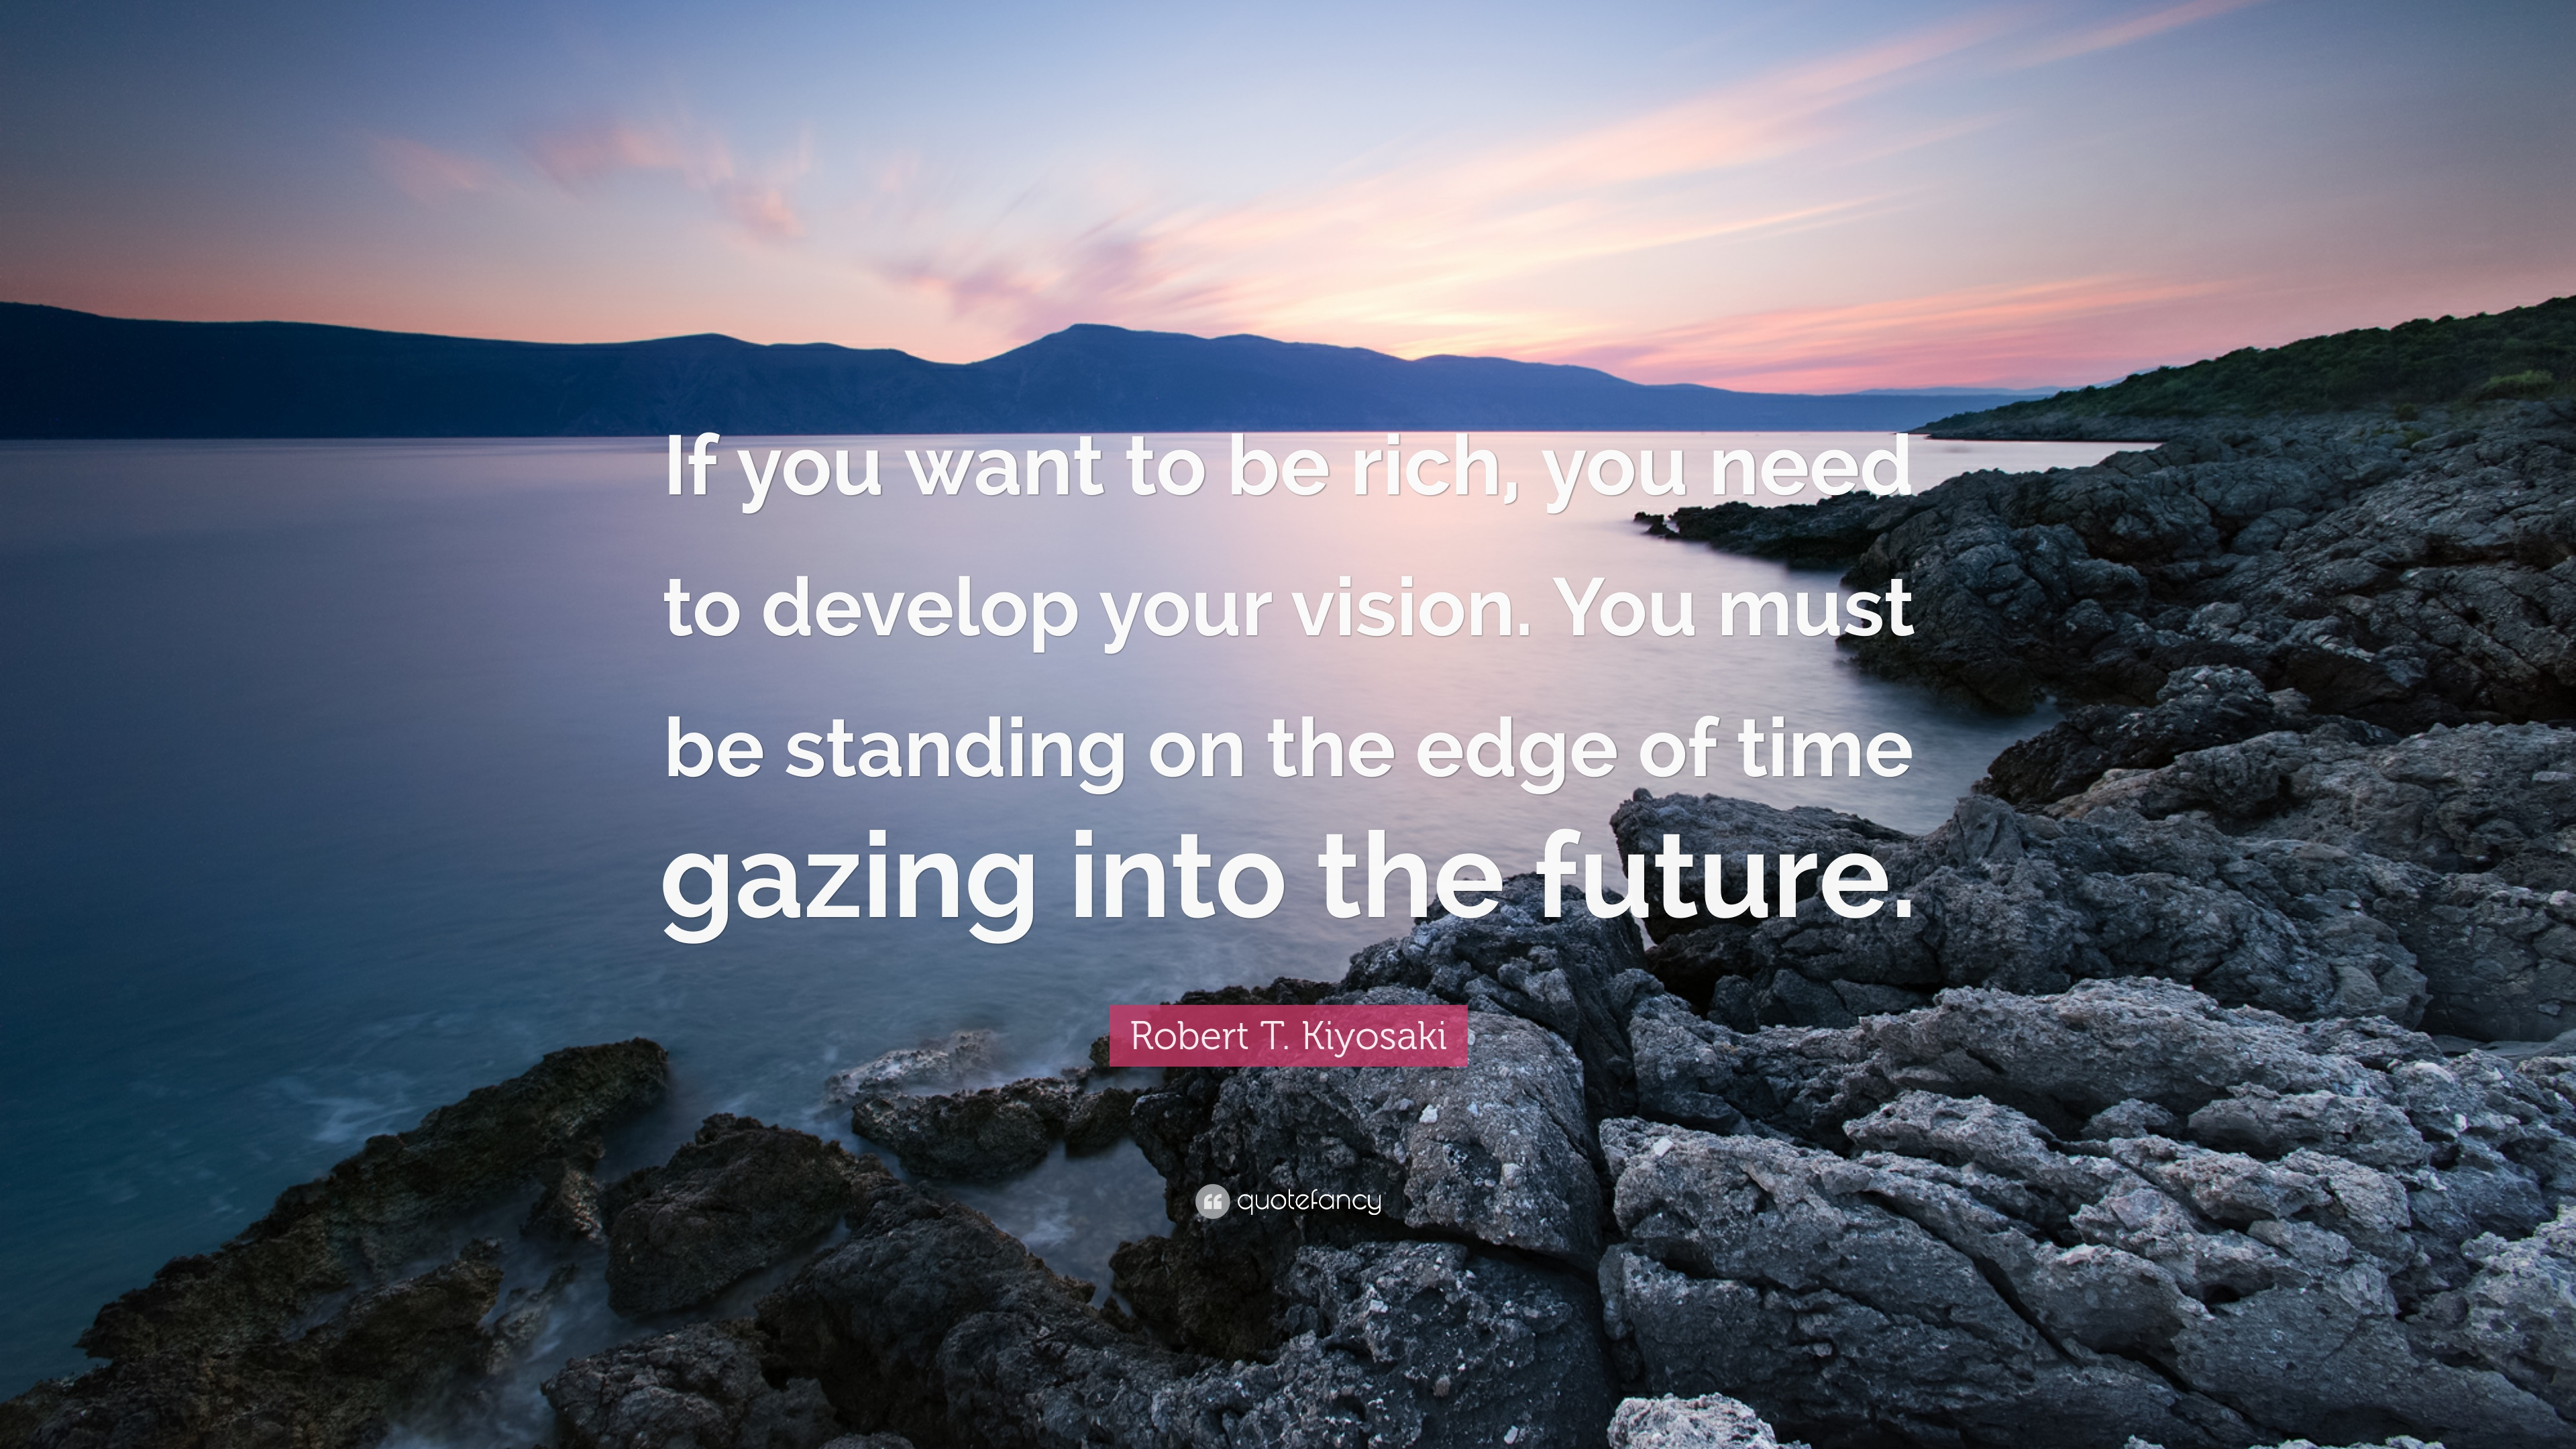 Robert T Kiyosaki Quote If You Want To Be Rich You Need To